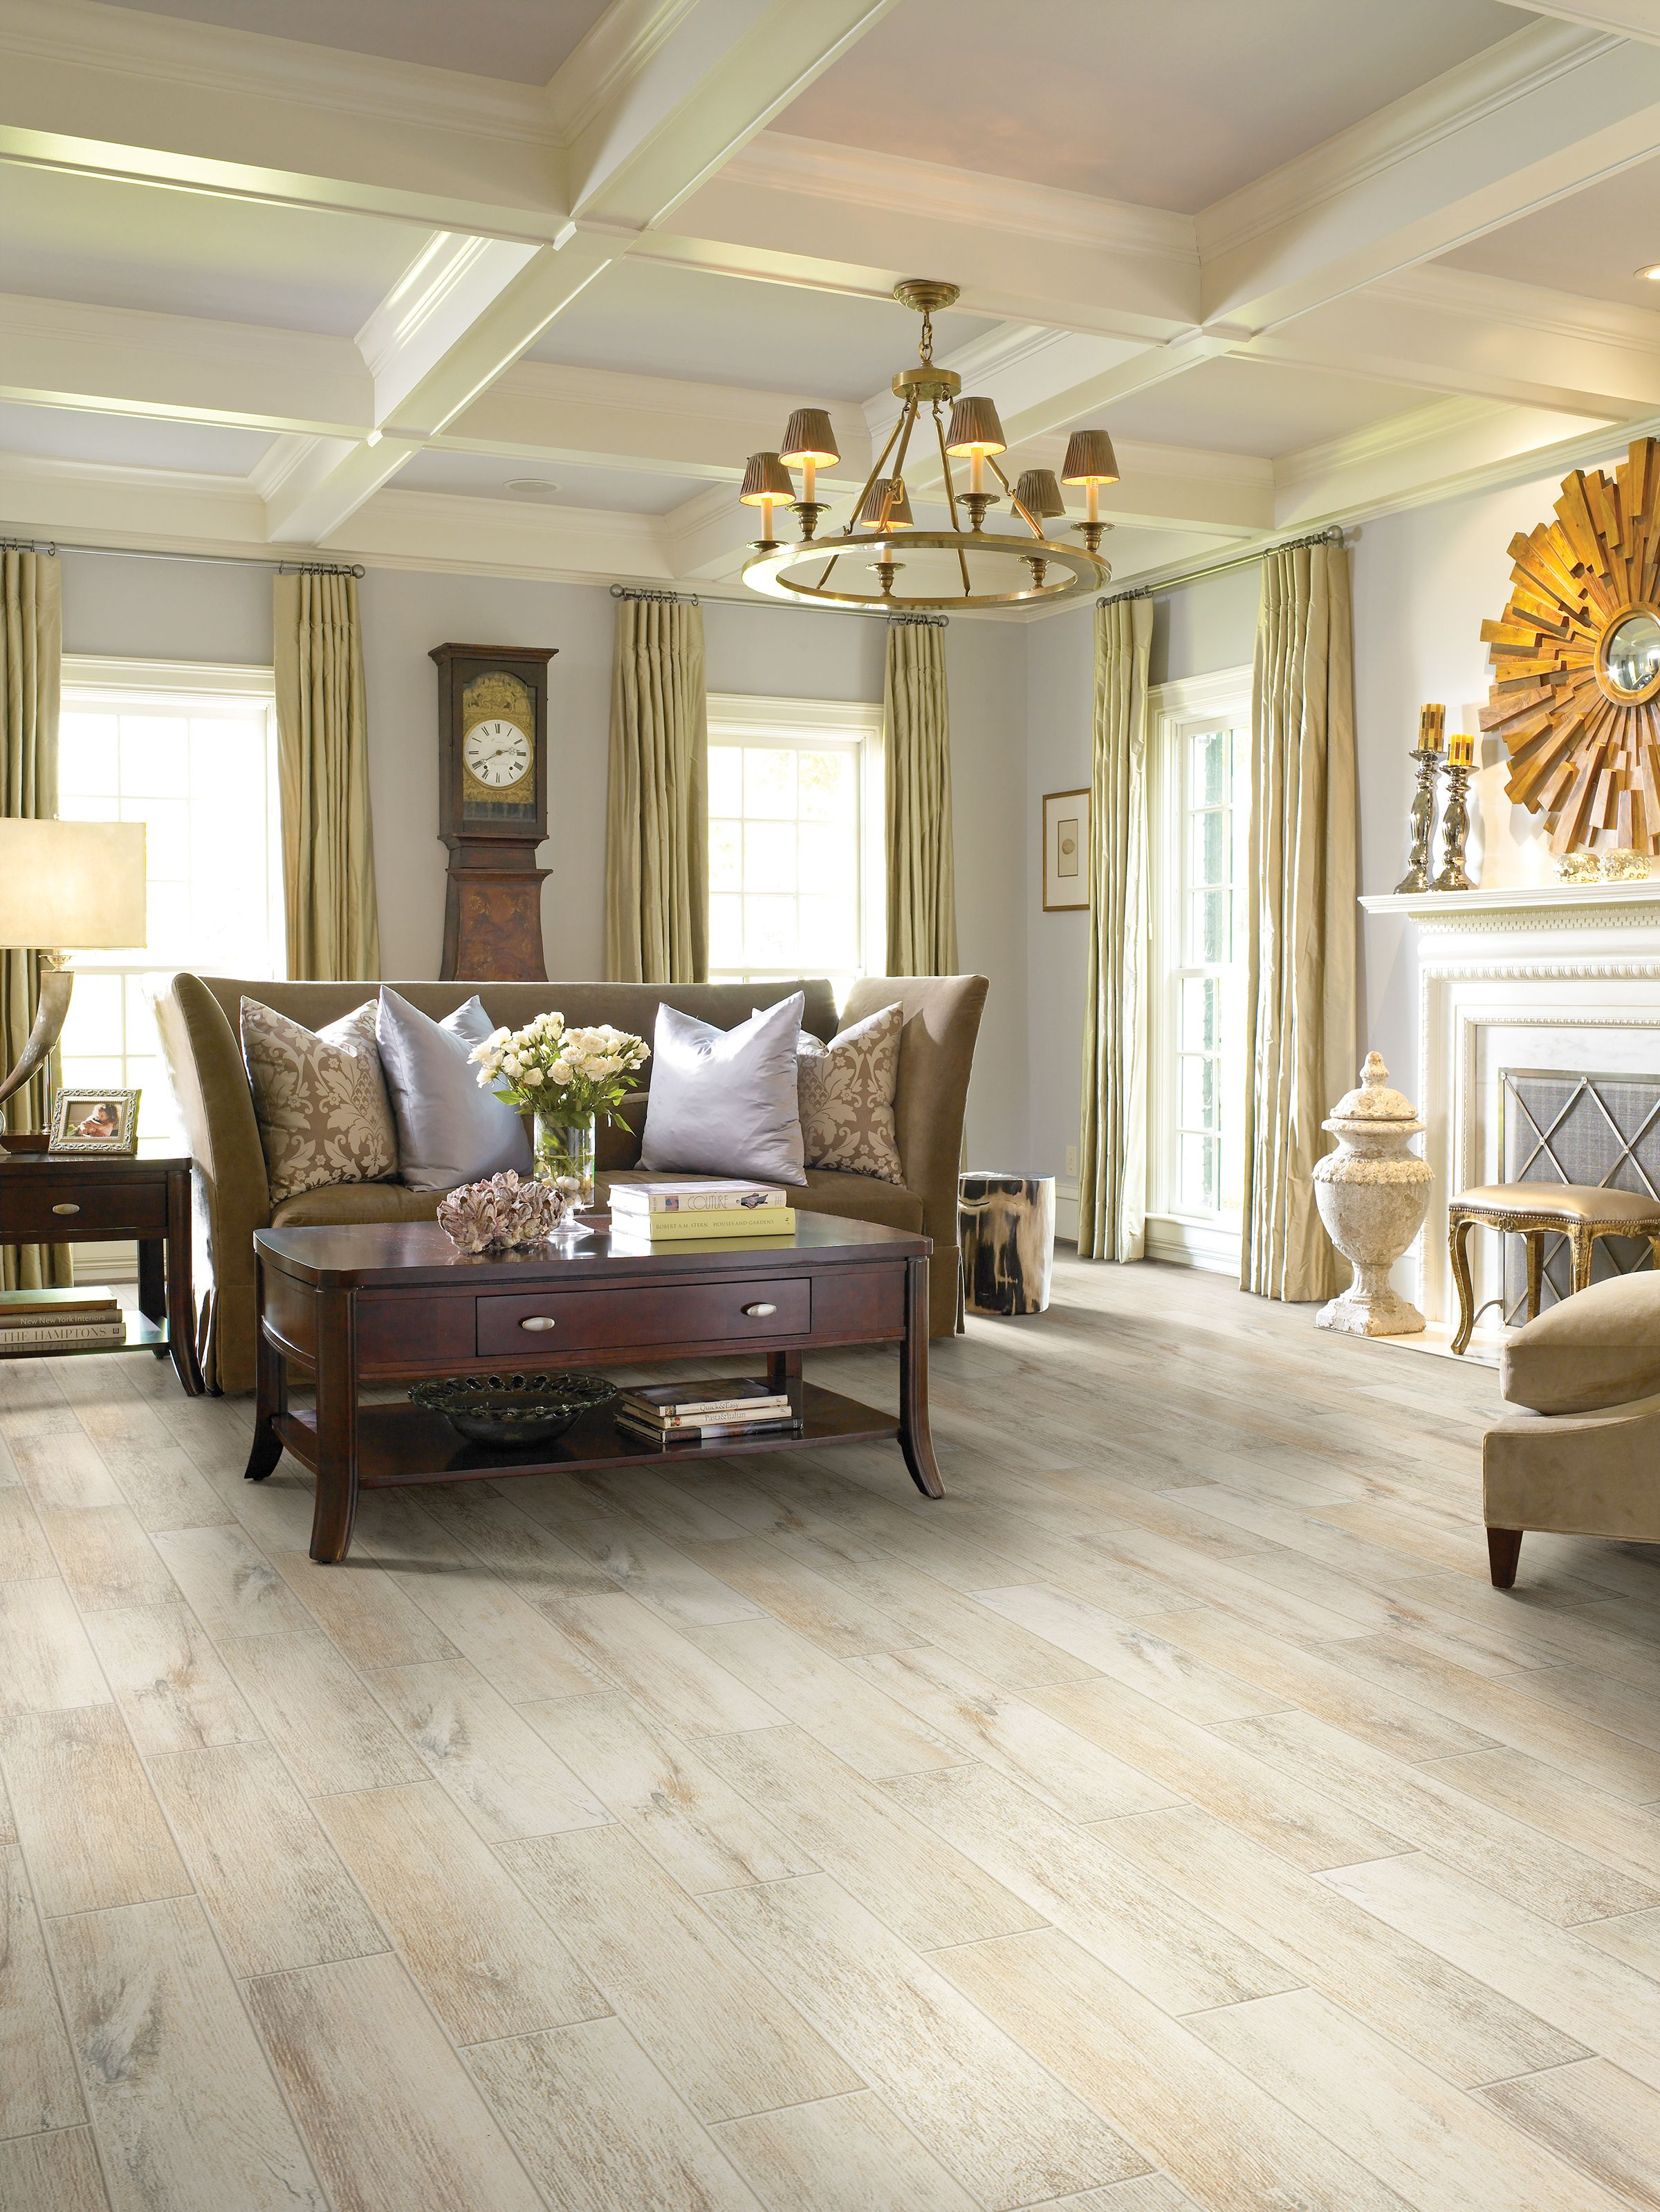 Tile A Timeless Choice With Endless Possibilities Tile Can